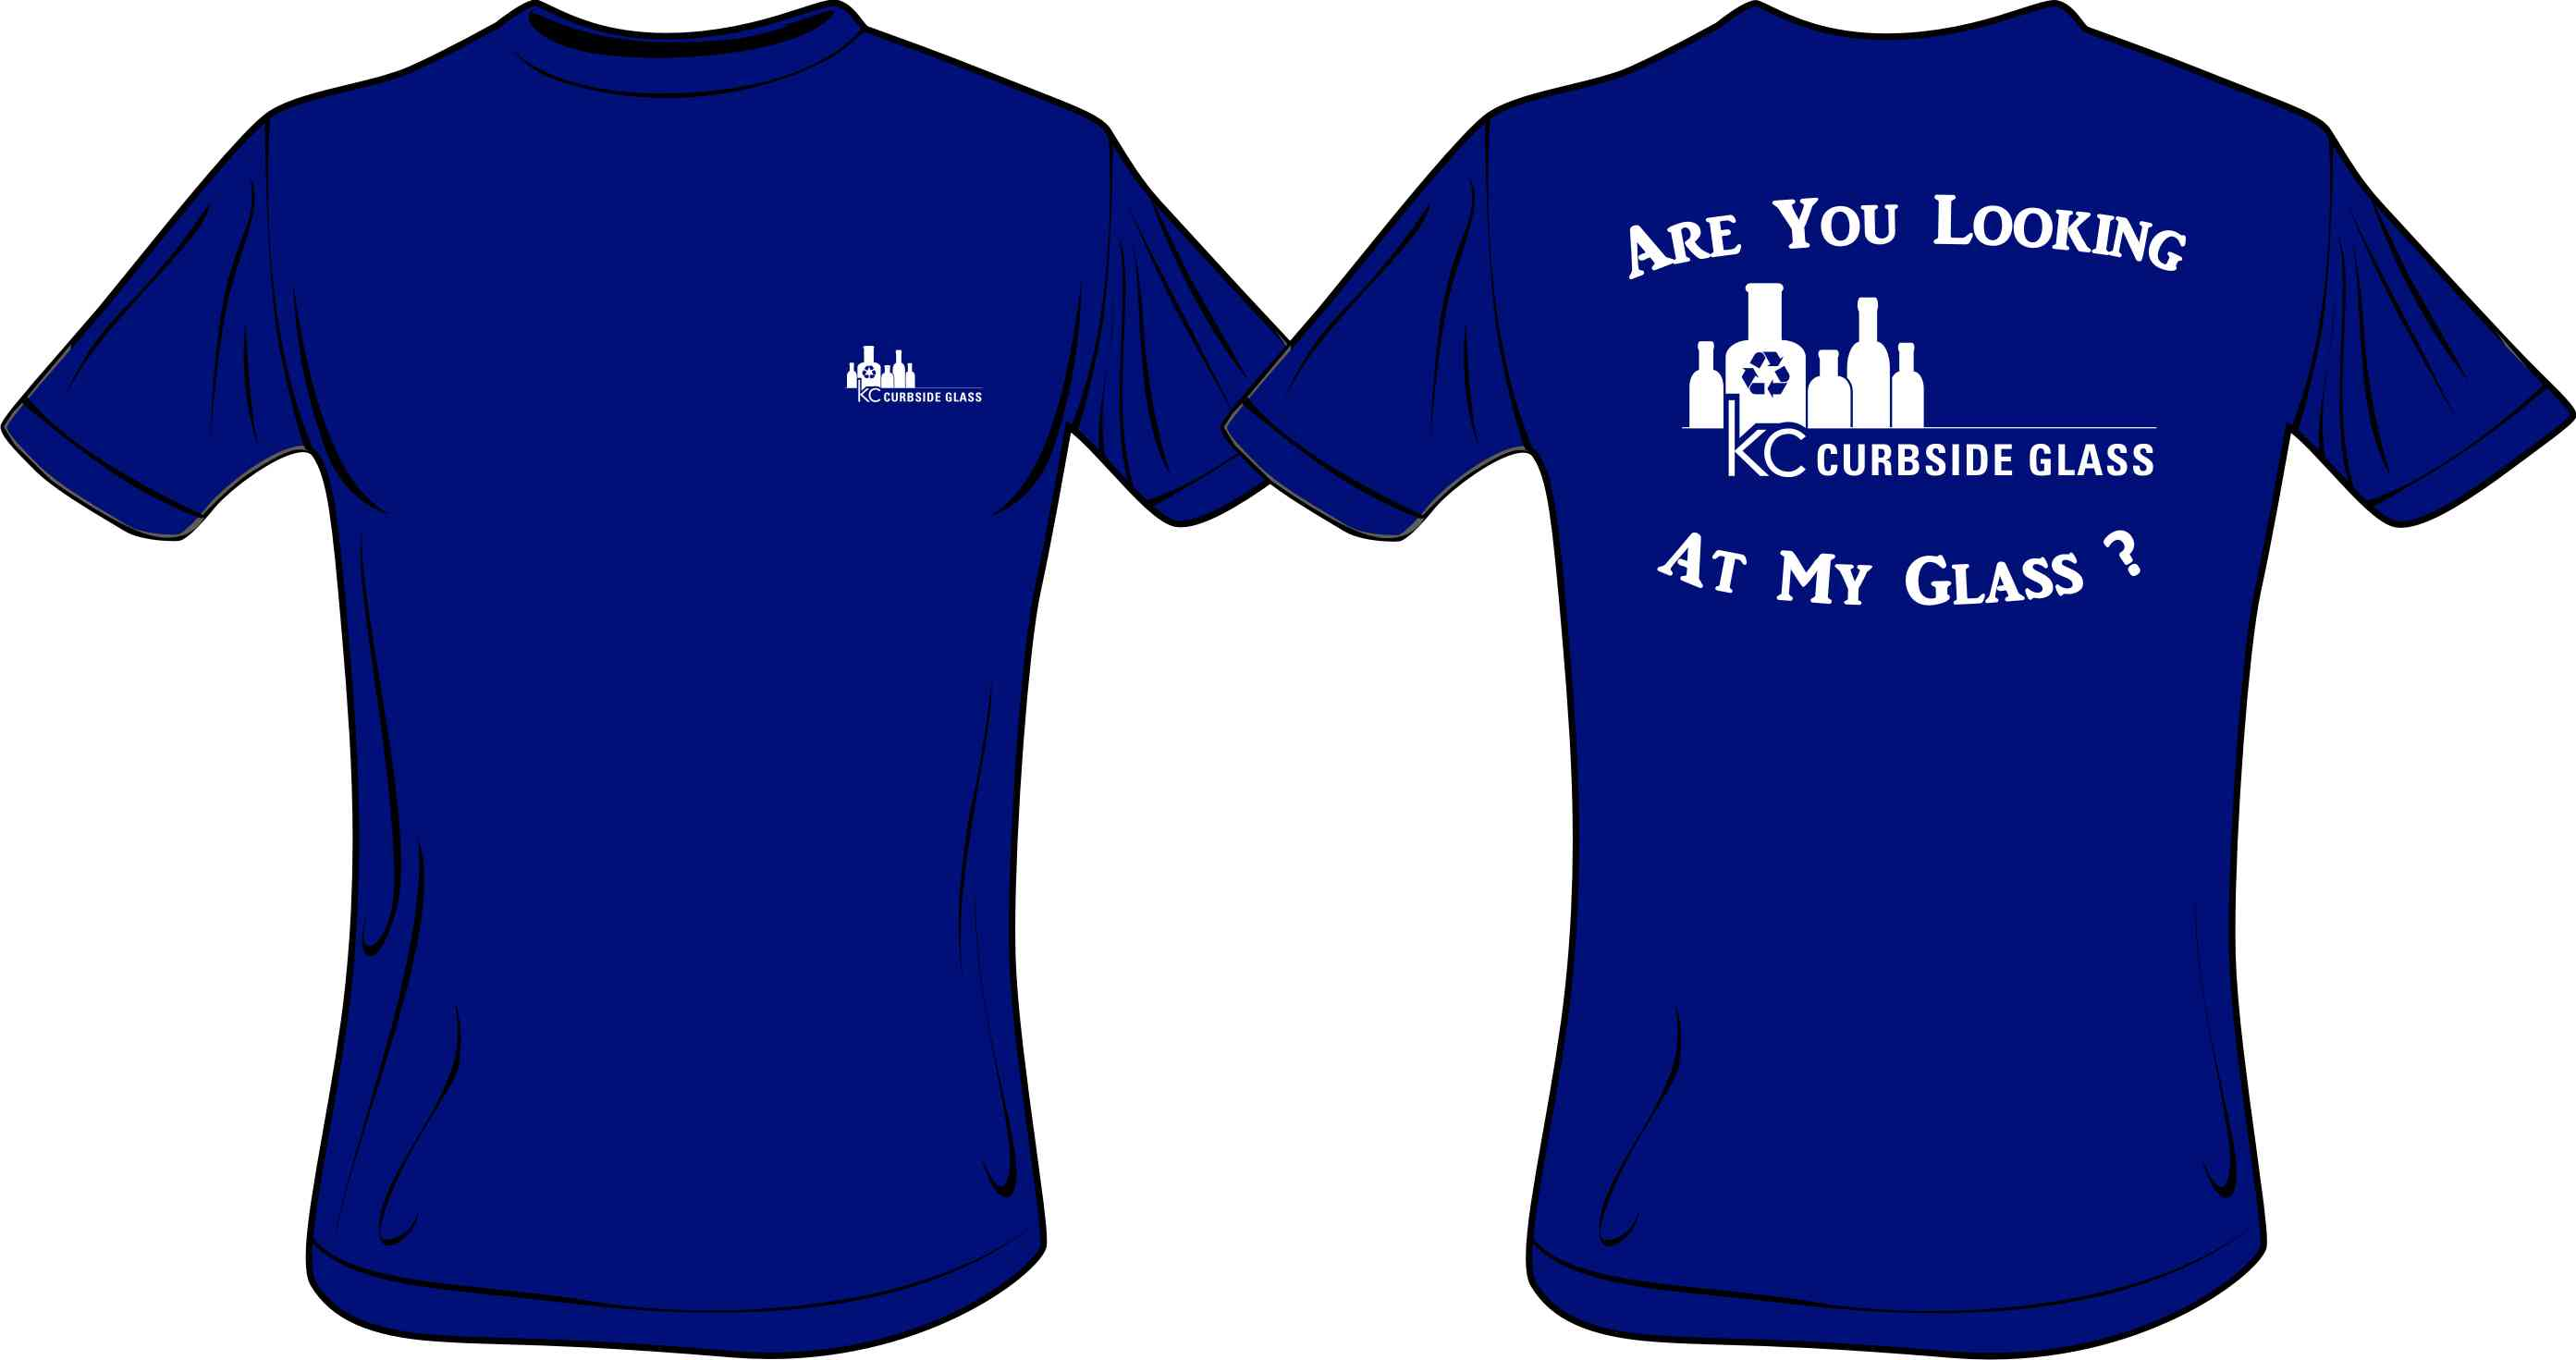 Kansas city curbside glass recycling news kc curbside glass for Shirts that donate to charity